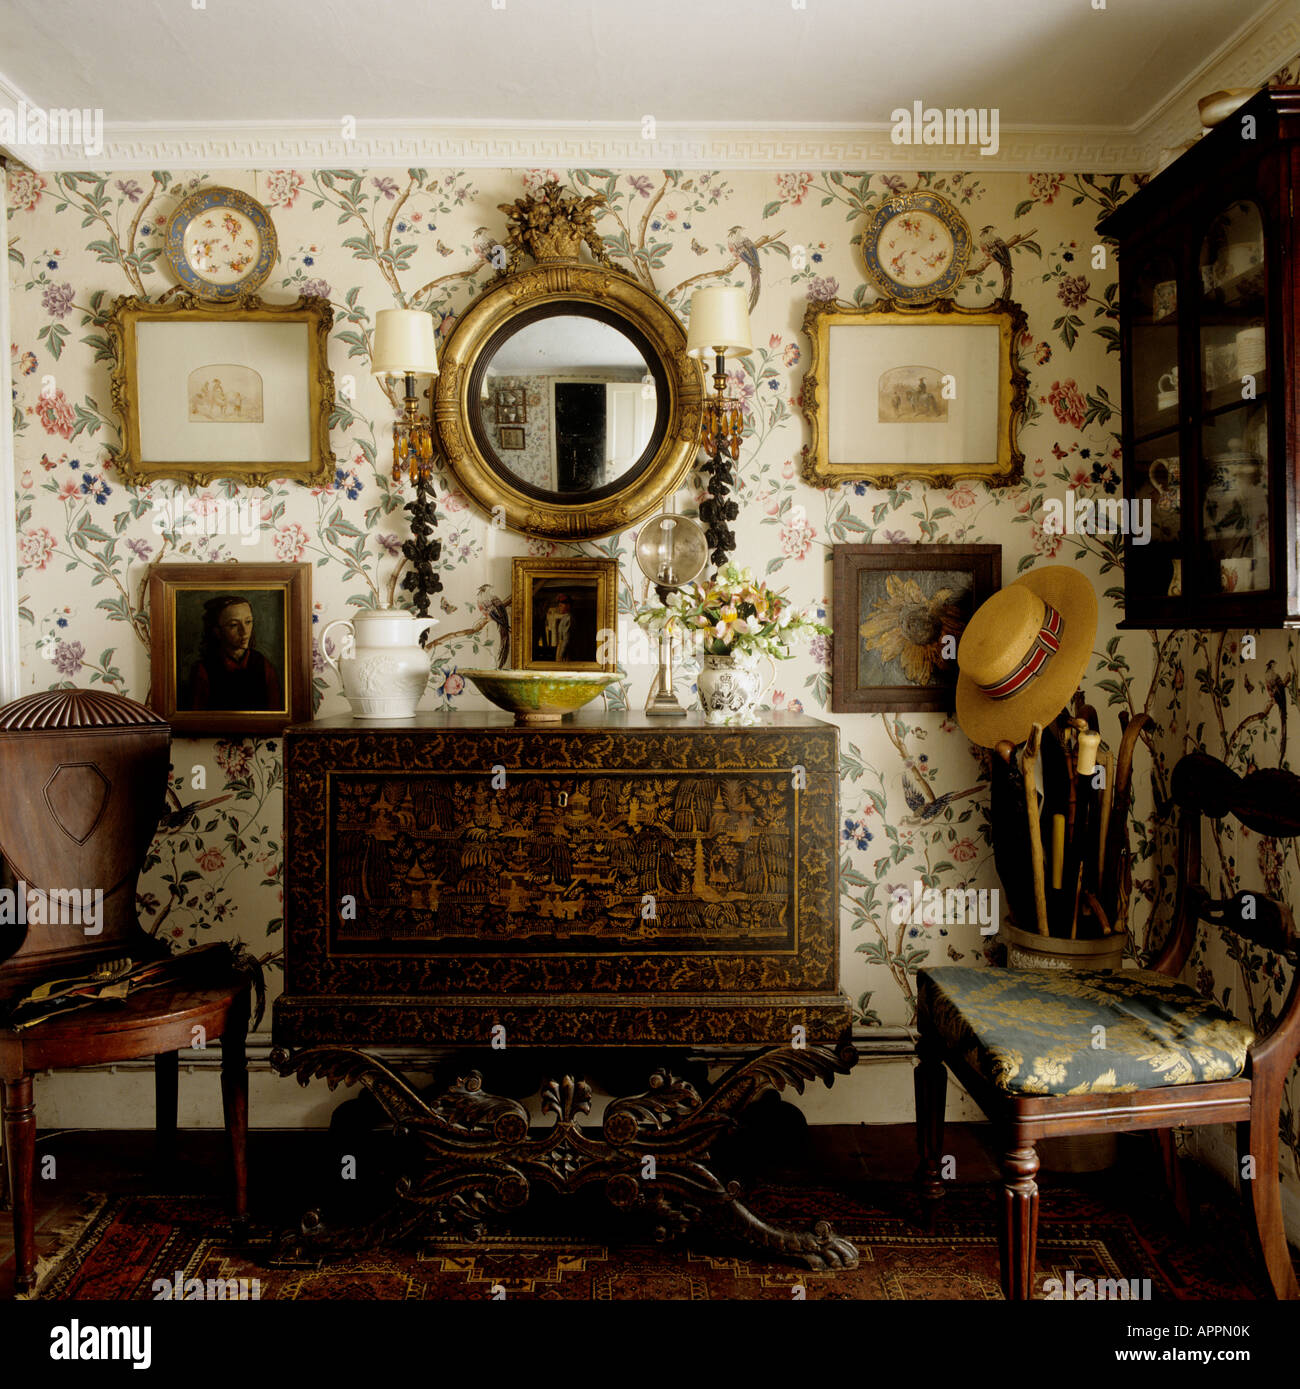 20 Modern Interior Decorating In Traditional English Style: English Cottage Interior Stock Photos & English Cottage